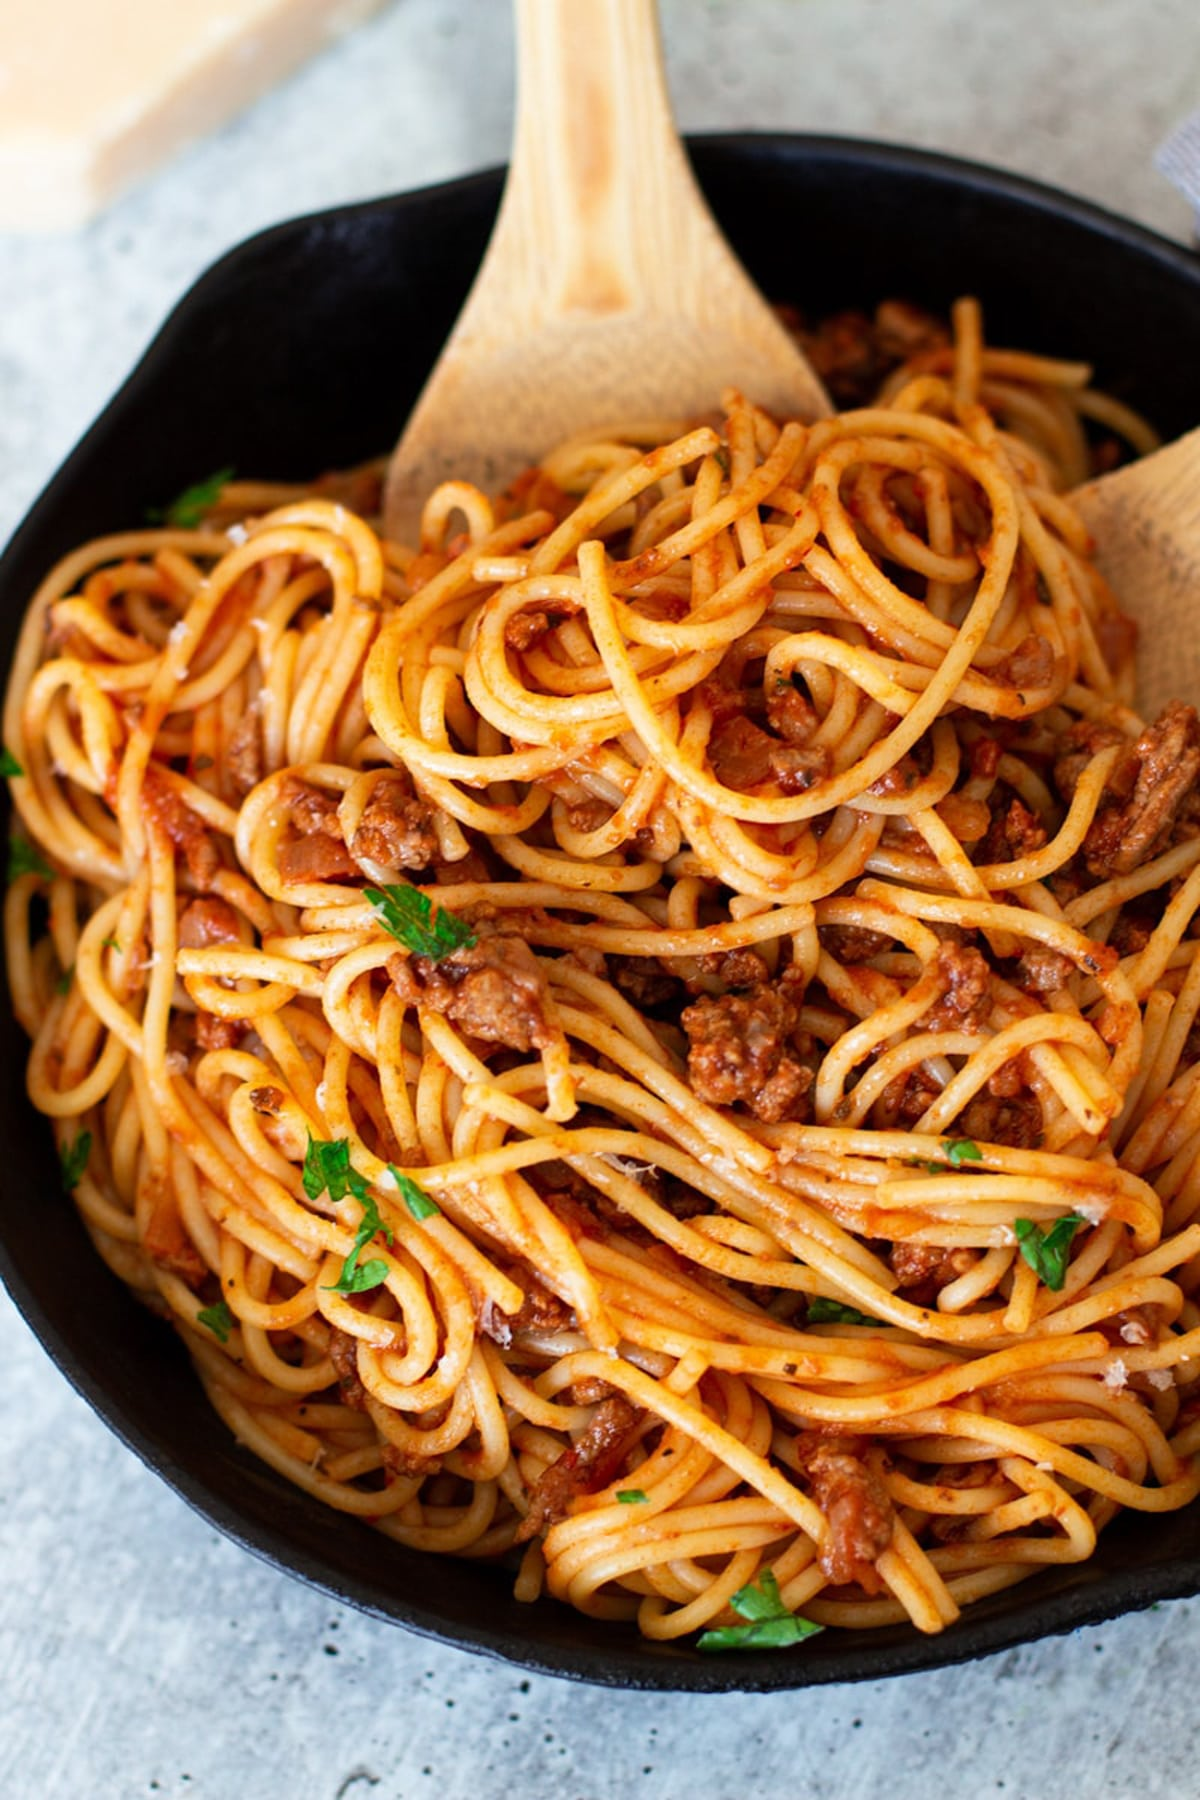 Skillet with spaghetti, wooden spoons in pan.